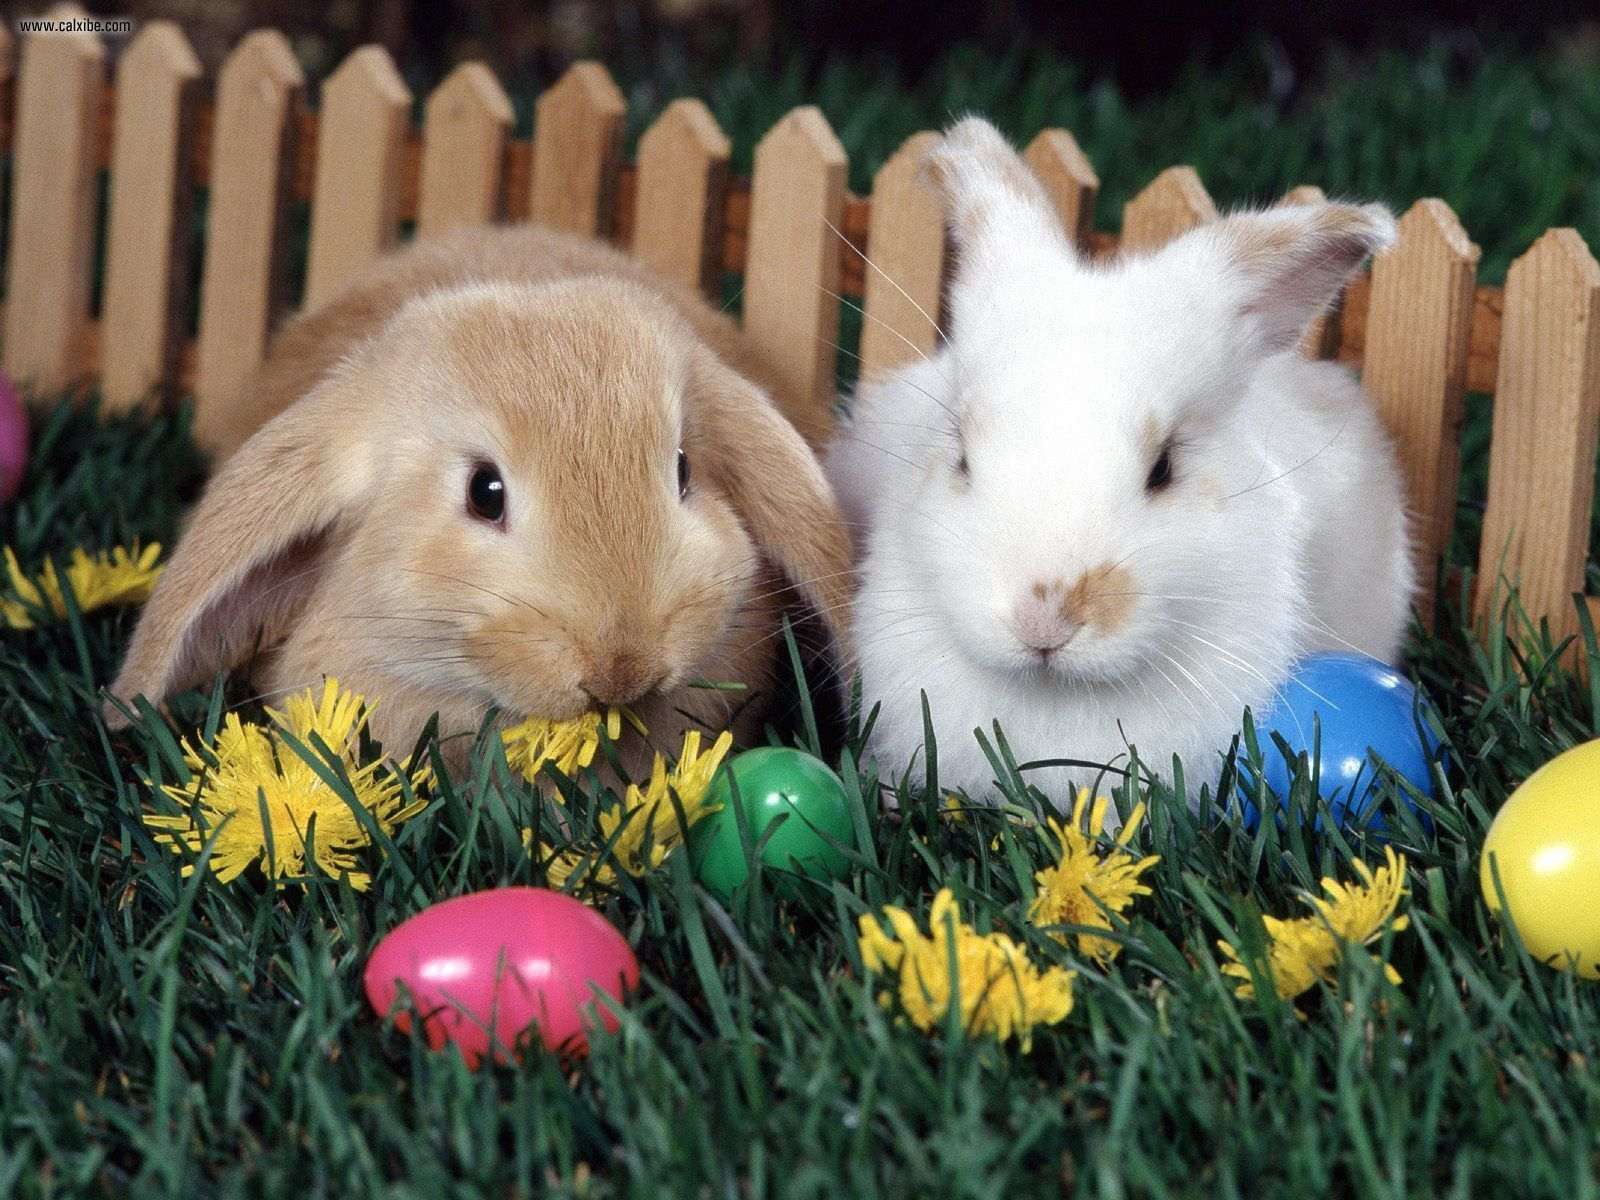 Walmart canada clearance great deals on easter gift ideas free 8808386 easter bunny eggs negle Choice Image